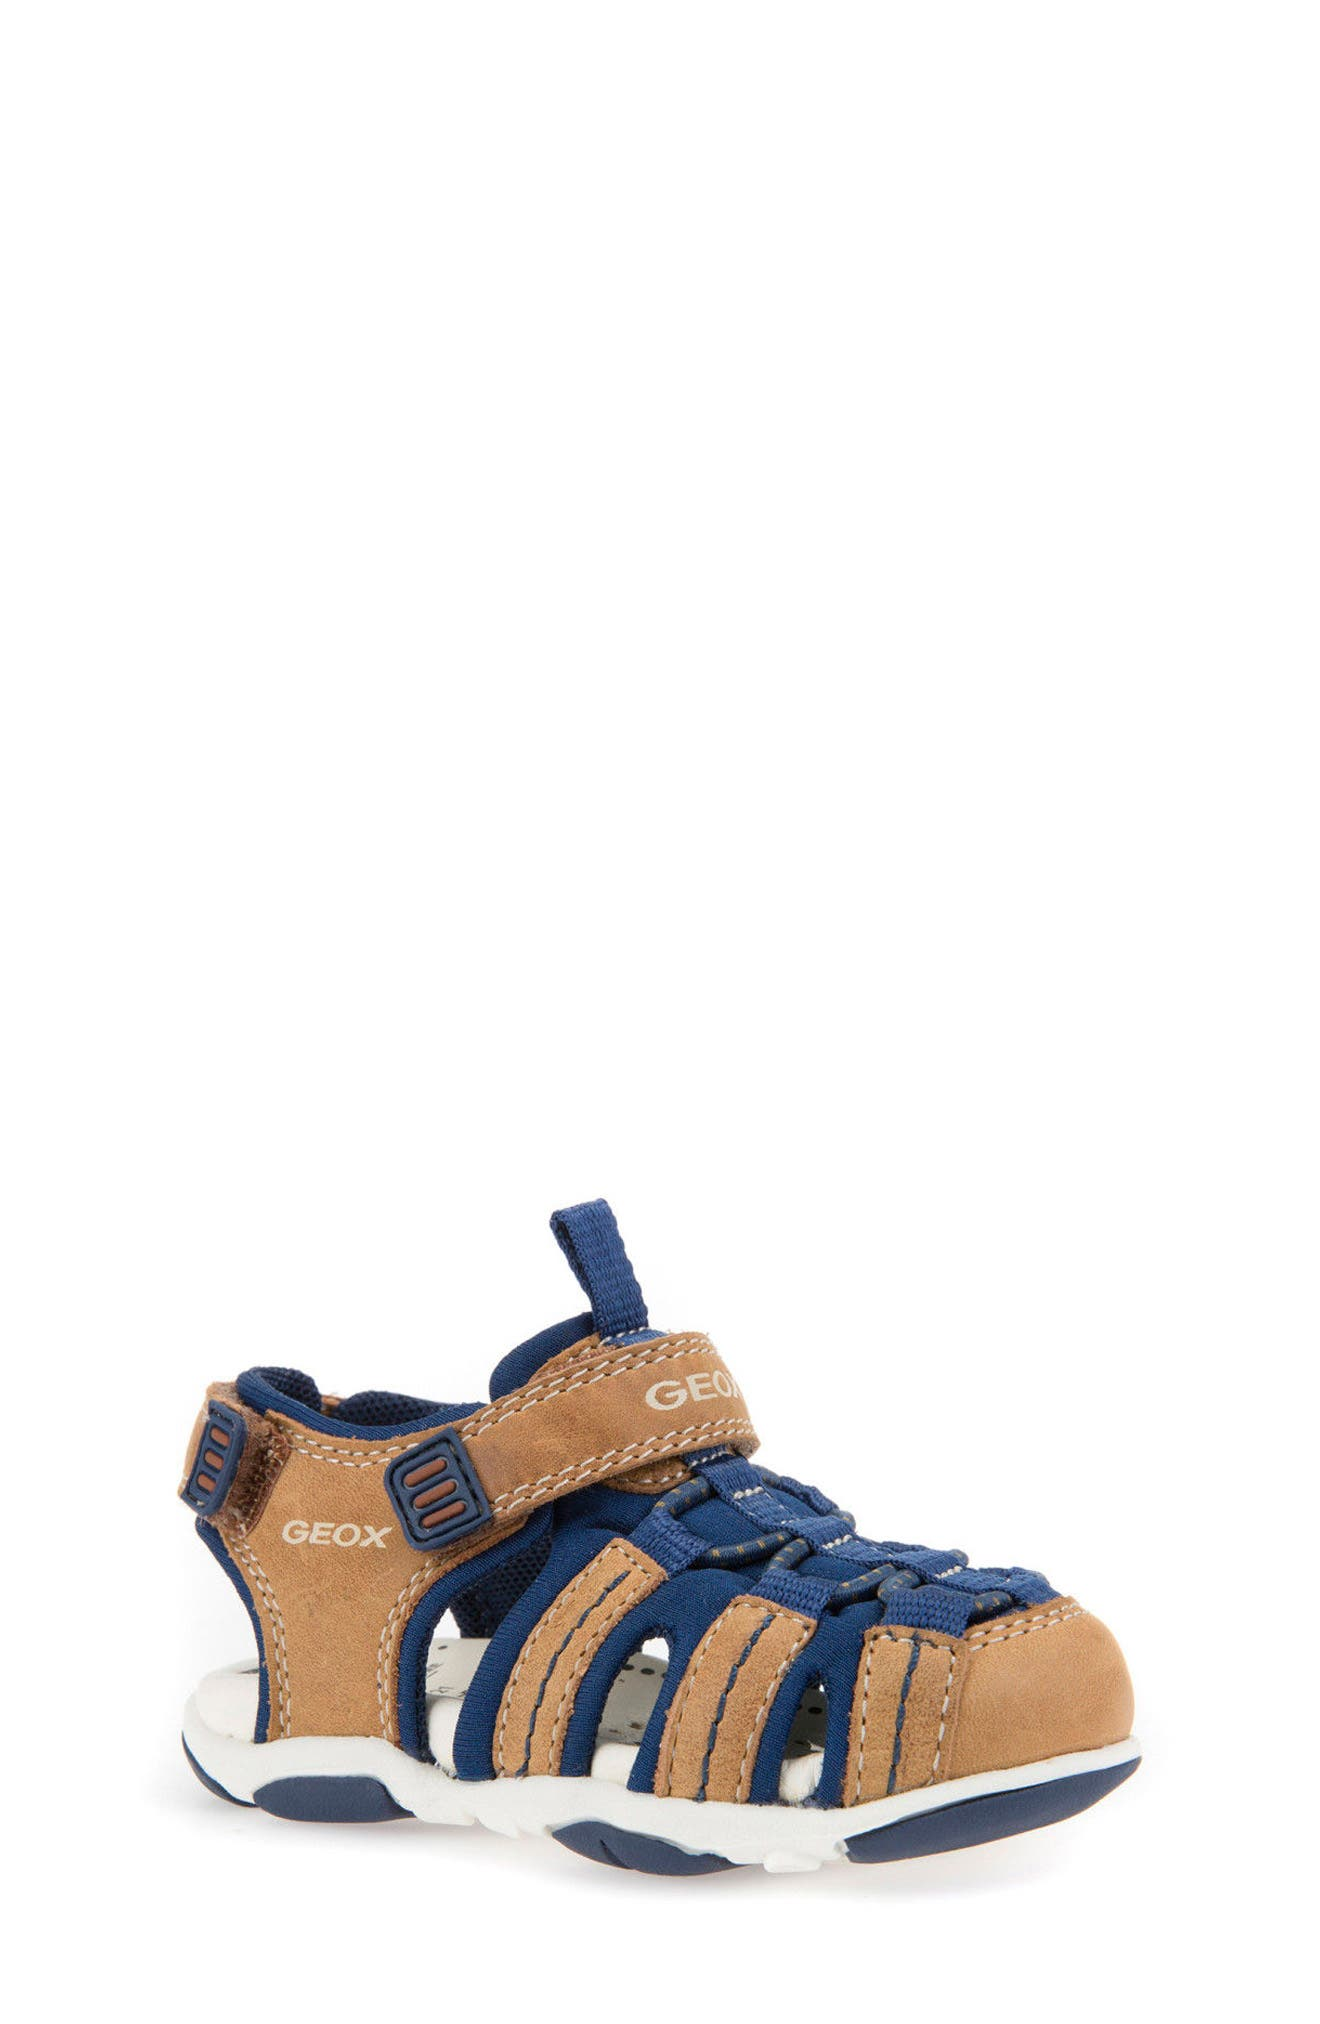 Agasim Fisherman Sandal,                         Main,                         color, Caramel/ Navy